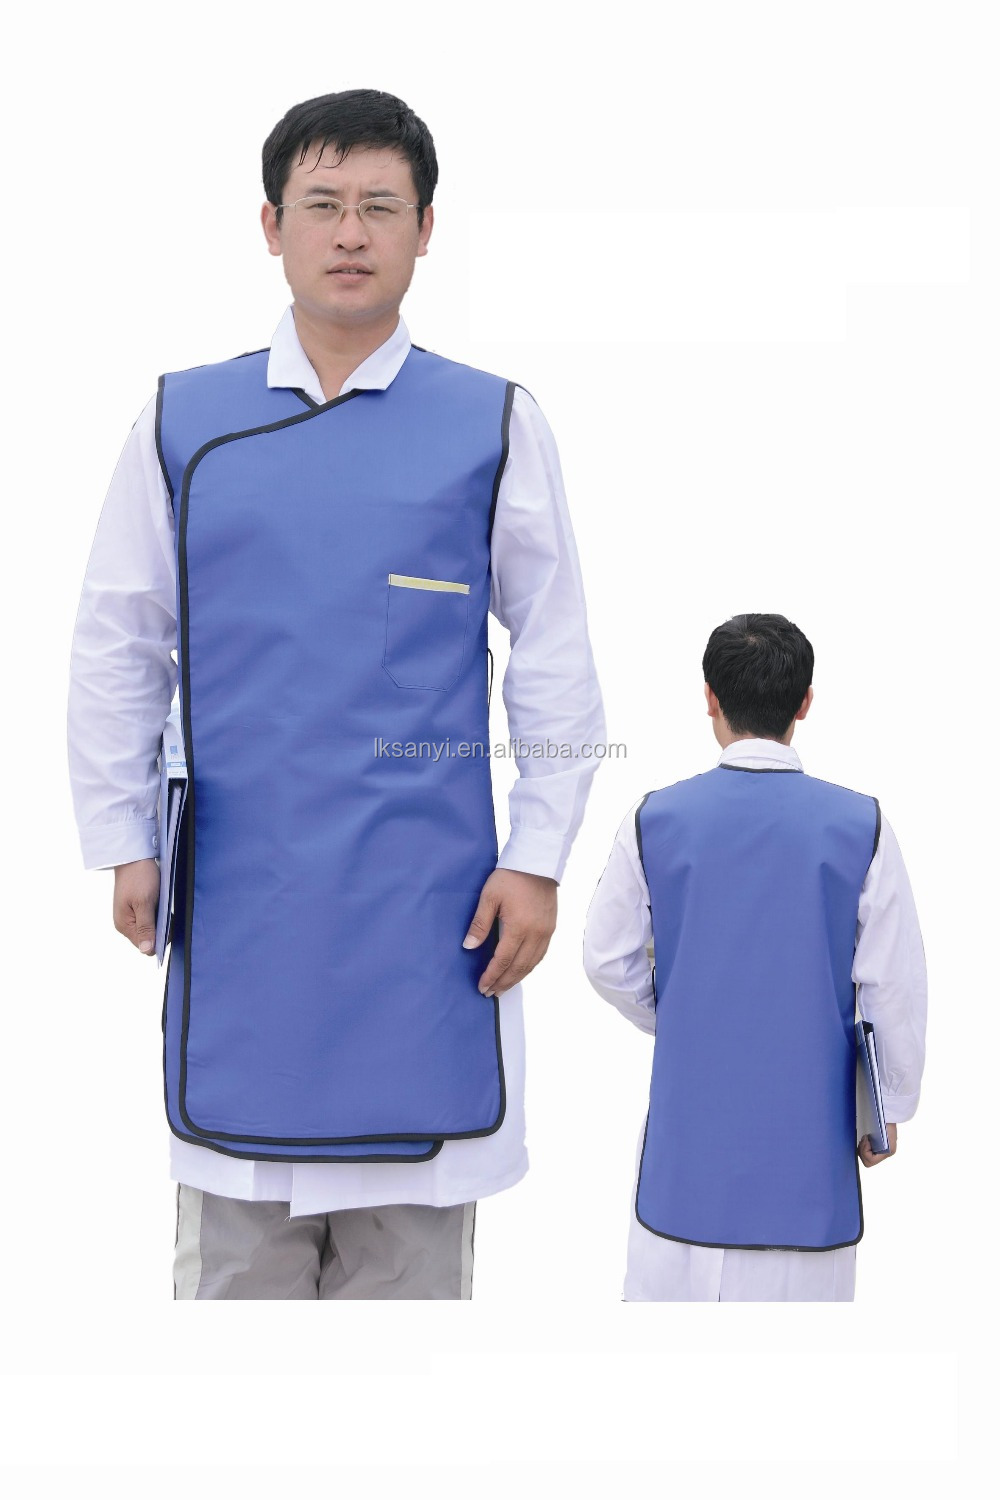 Radiation Protection X-ray Lead Apron